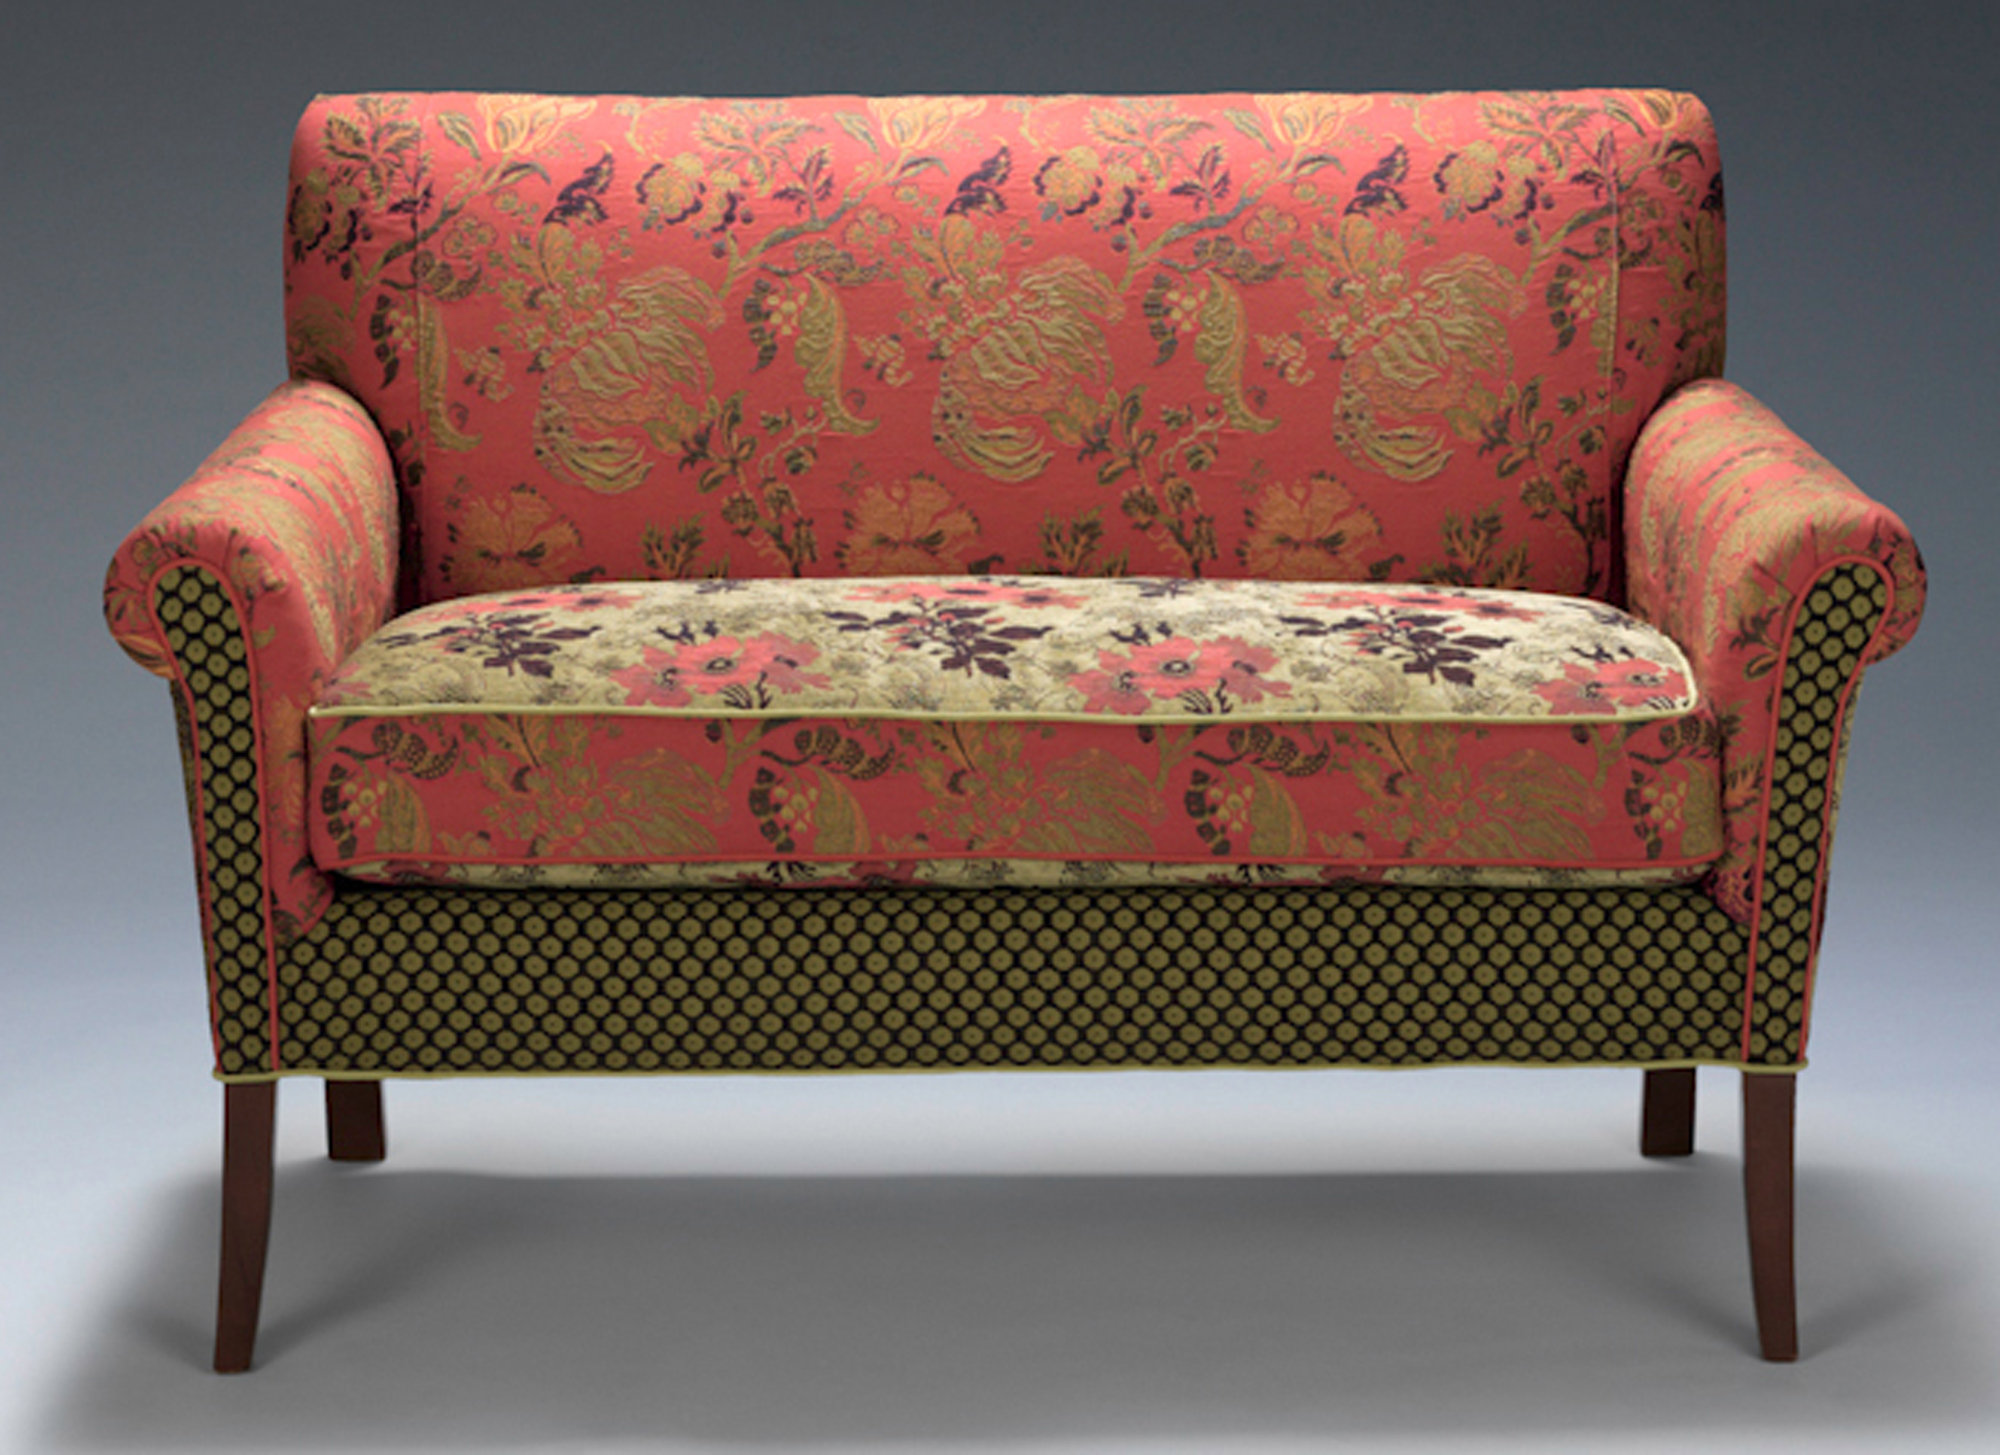 Salon Settee In Melody Rustic By Mary Lynn O Shea Upholstered Sofa Artful Home